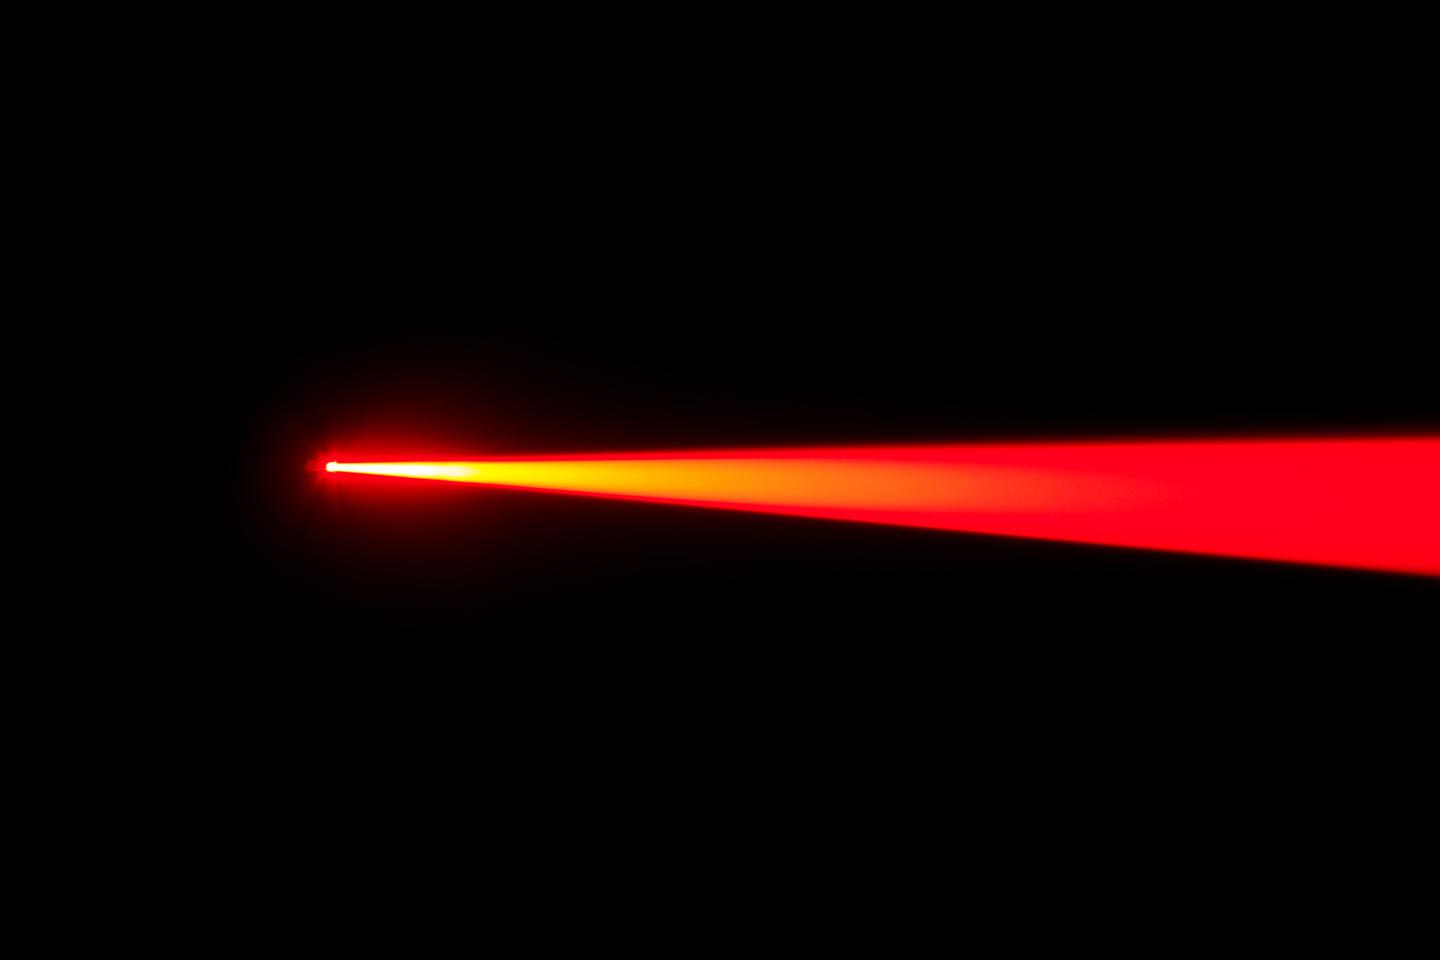 Lasers small and safe enough to live inside the human body could mean big things for medicine